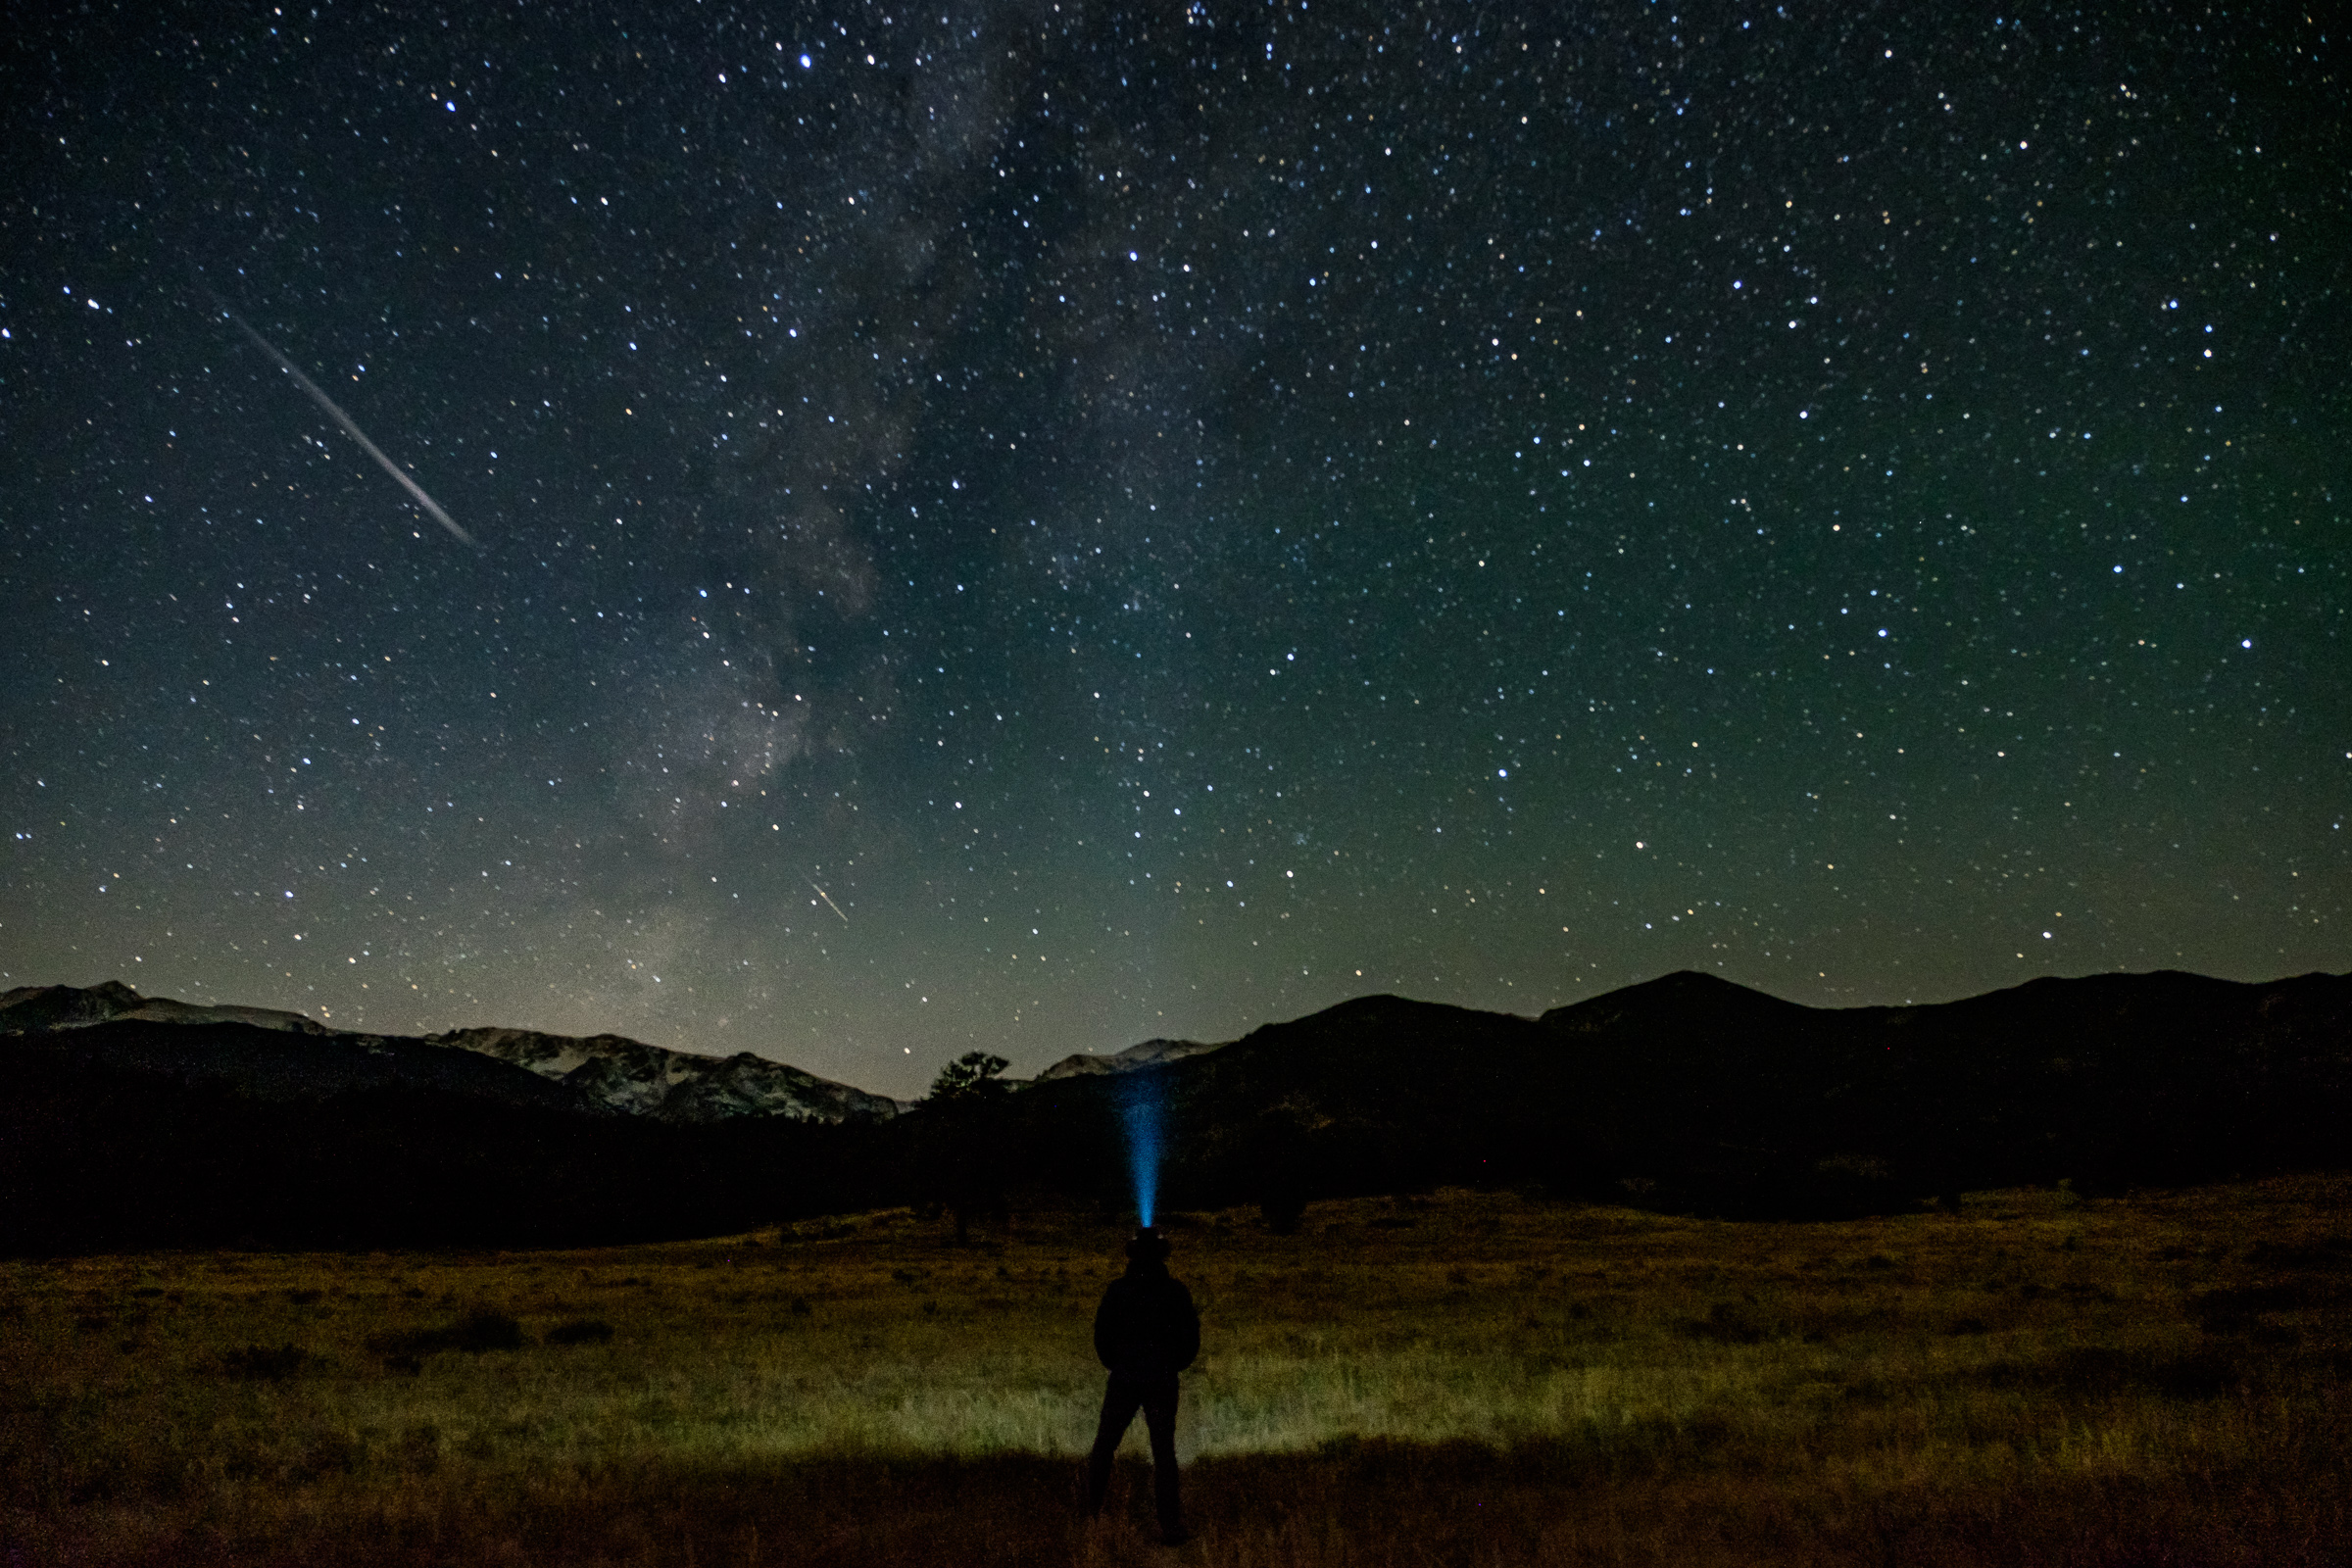 Star, starry night in Touching the sun in Rocky Mountain National Park in Colorado.